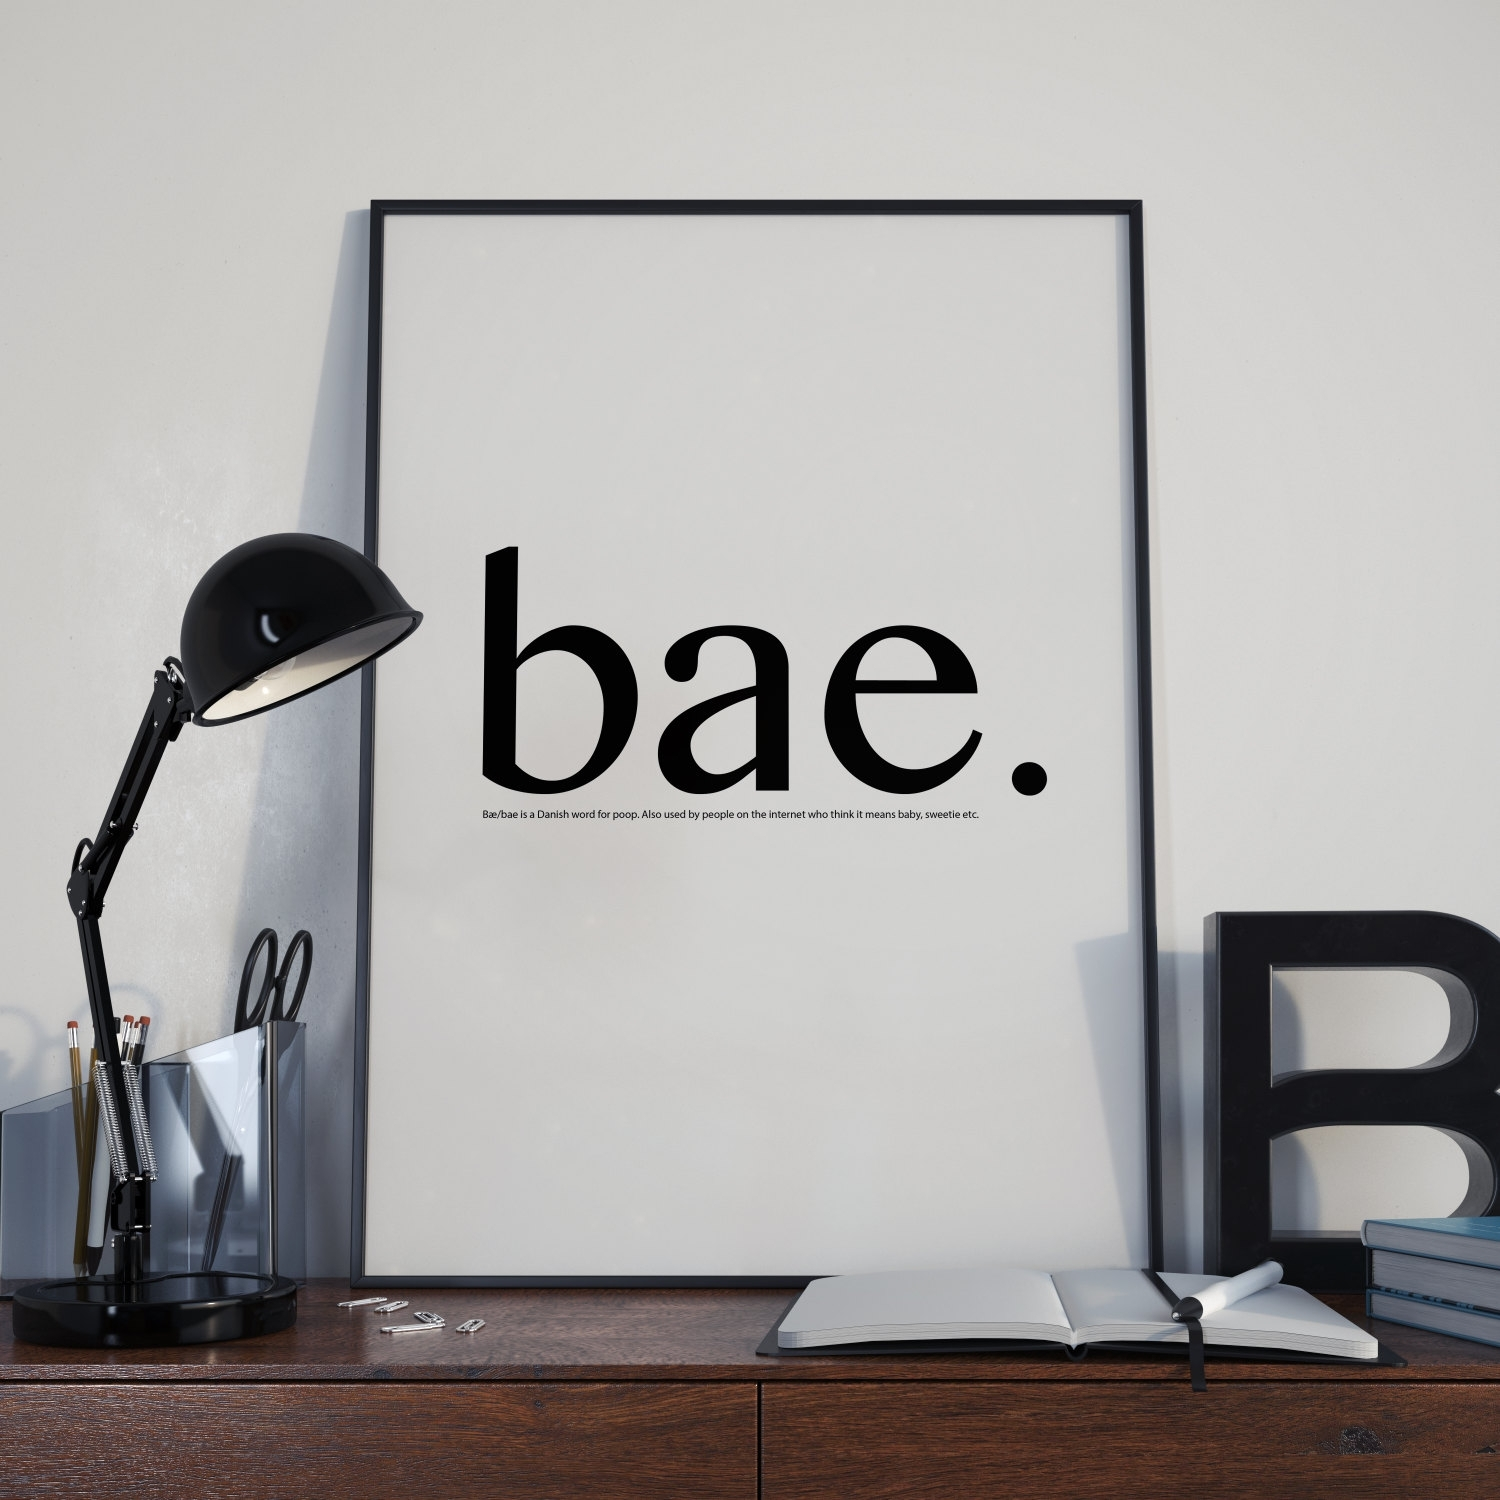 Bae Definition – Dictionary Definition Wall Art – Tumblr Wall Art With Regard To Most Recent Tumblr Wall Art (View 5 of 20)